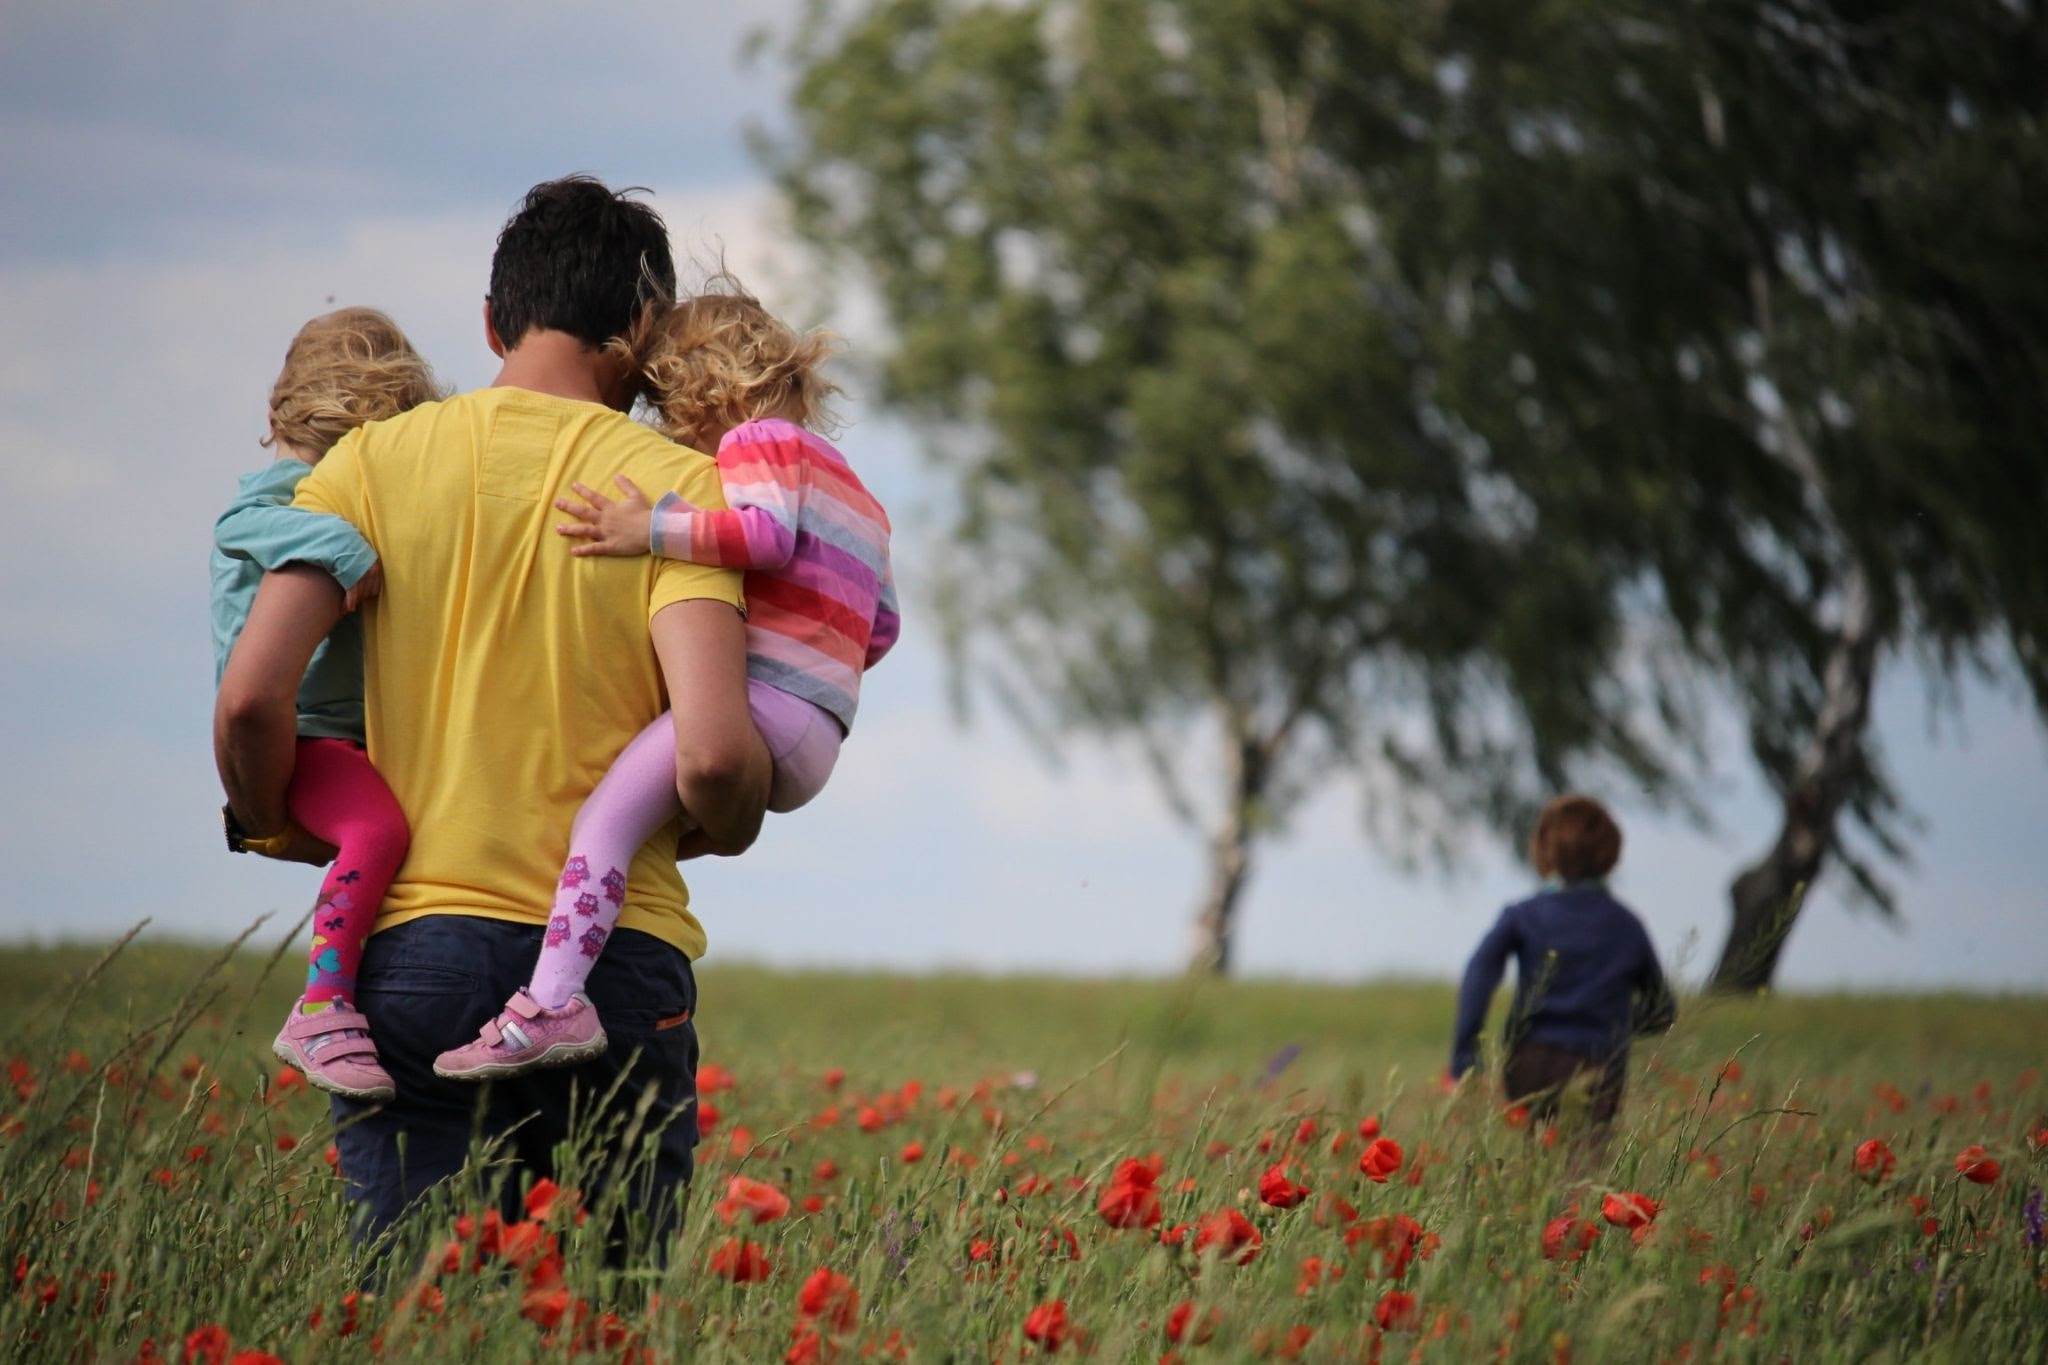 Man holding two children and walking in a field while another child runs ahead